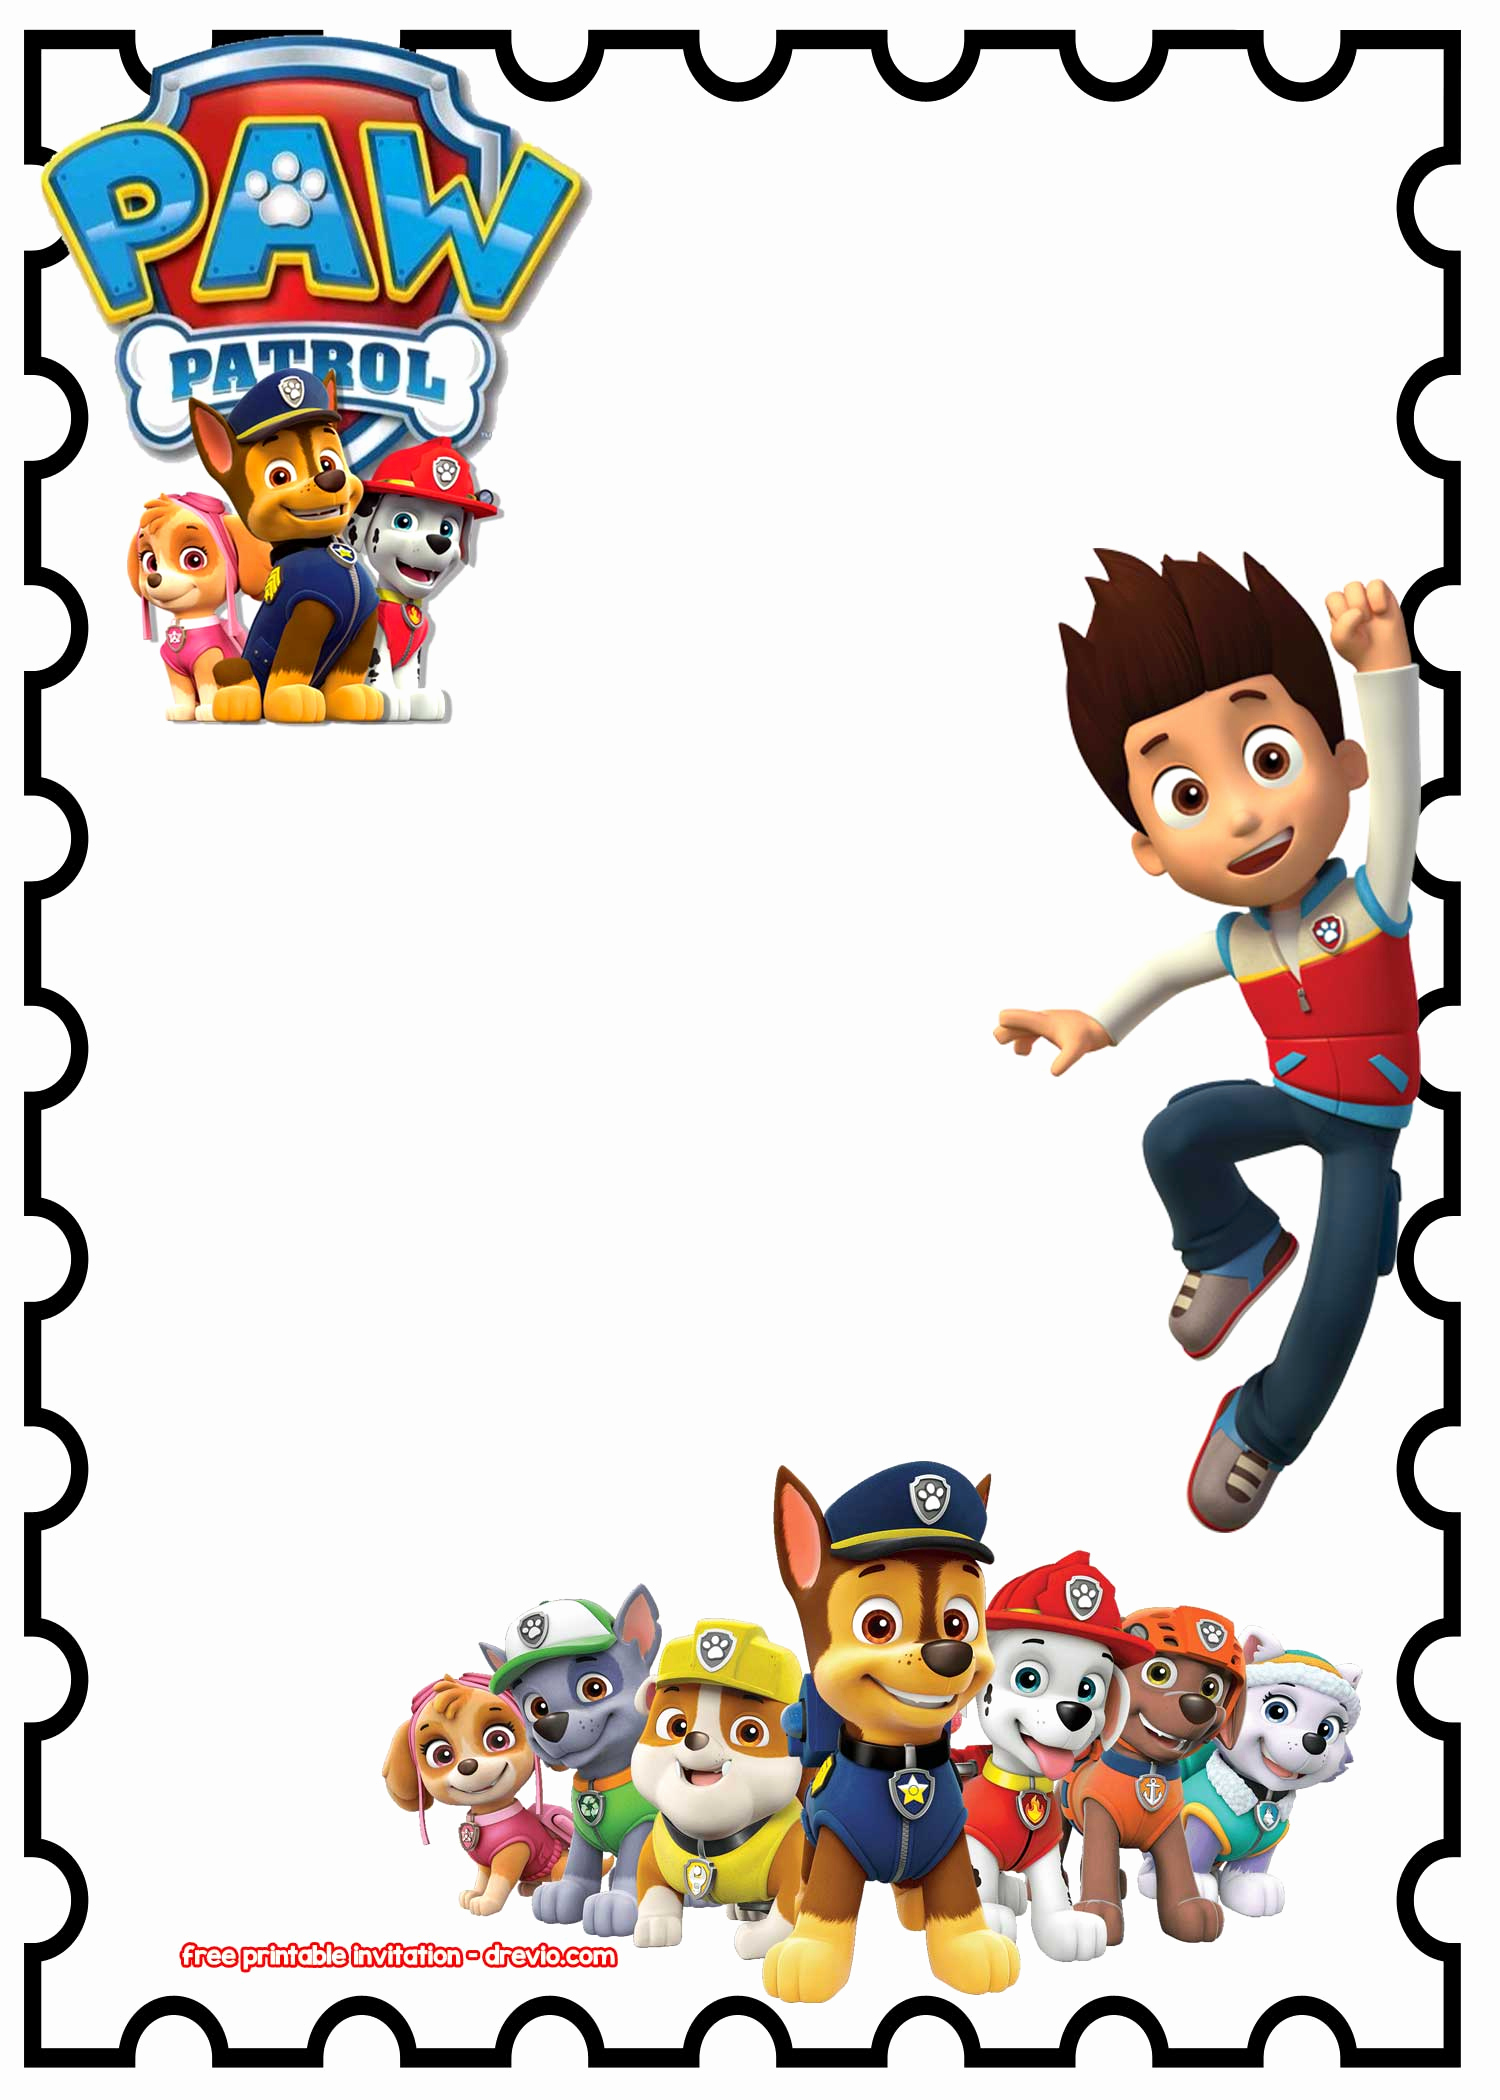 Paw Patrol Invitation Template Free Inspirational Free Printable Paw Patrol Birthday Invitation Chalkboard